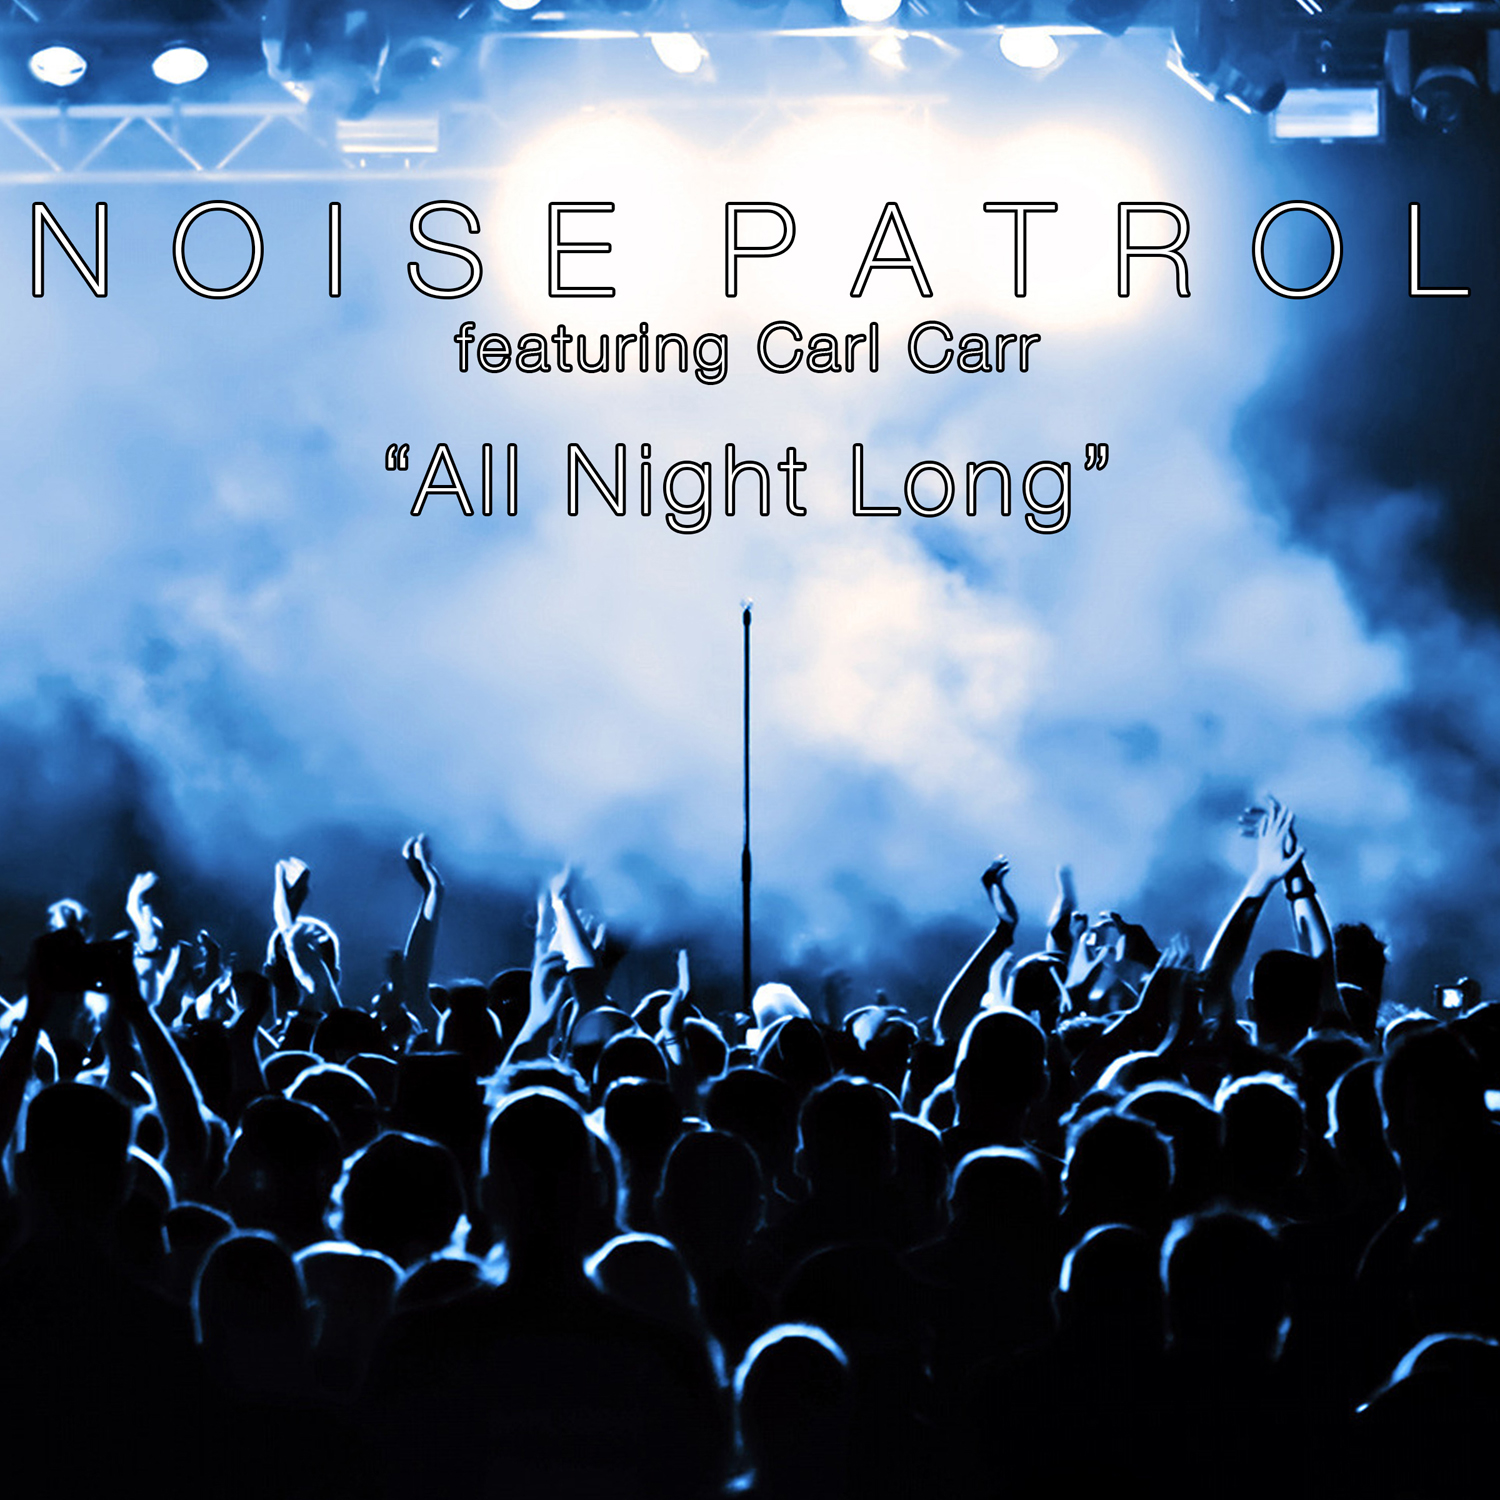 Noise Patrol - All Night Long (feat. Carl Carr)